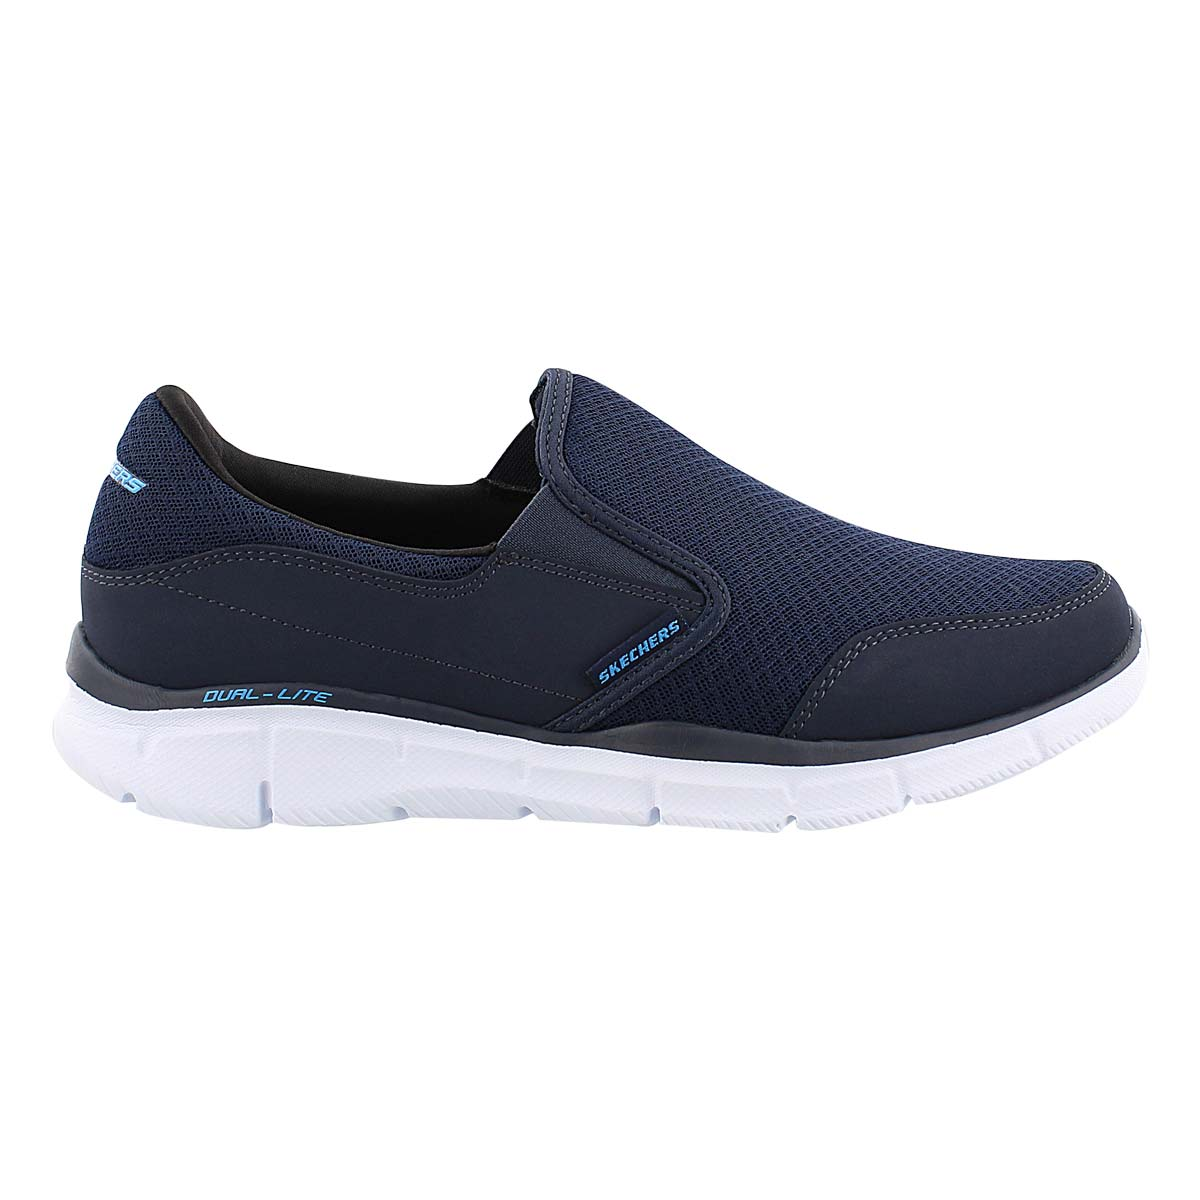 Mns Persistent navy slip on sneaker